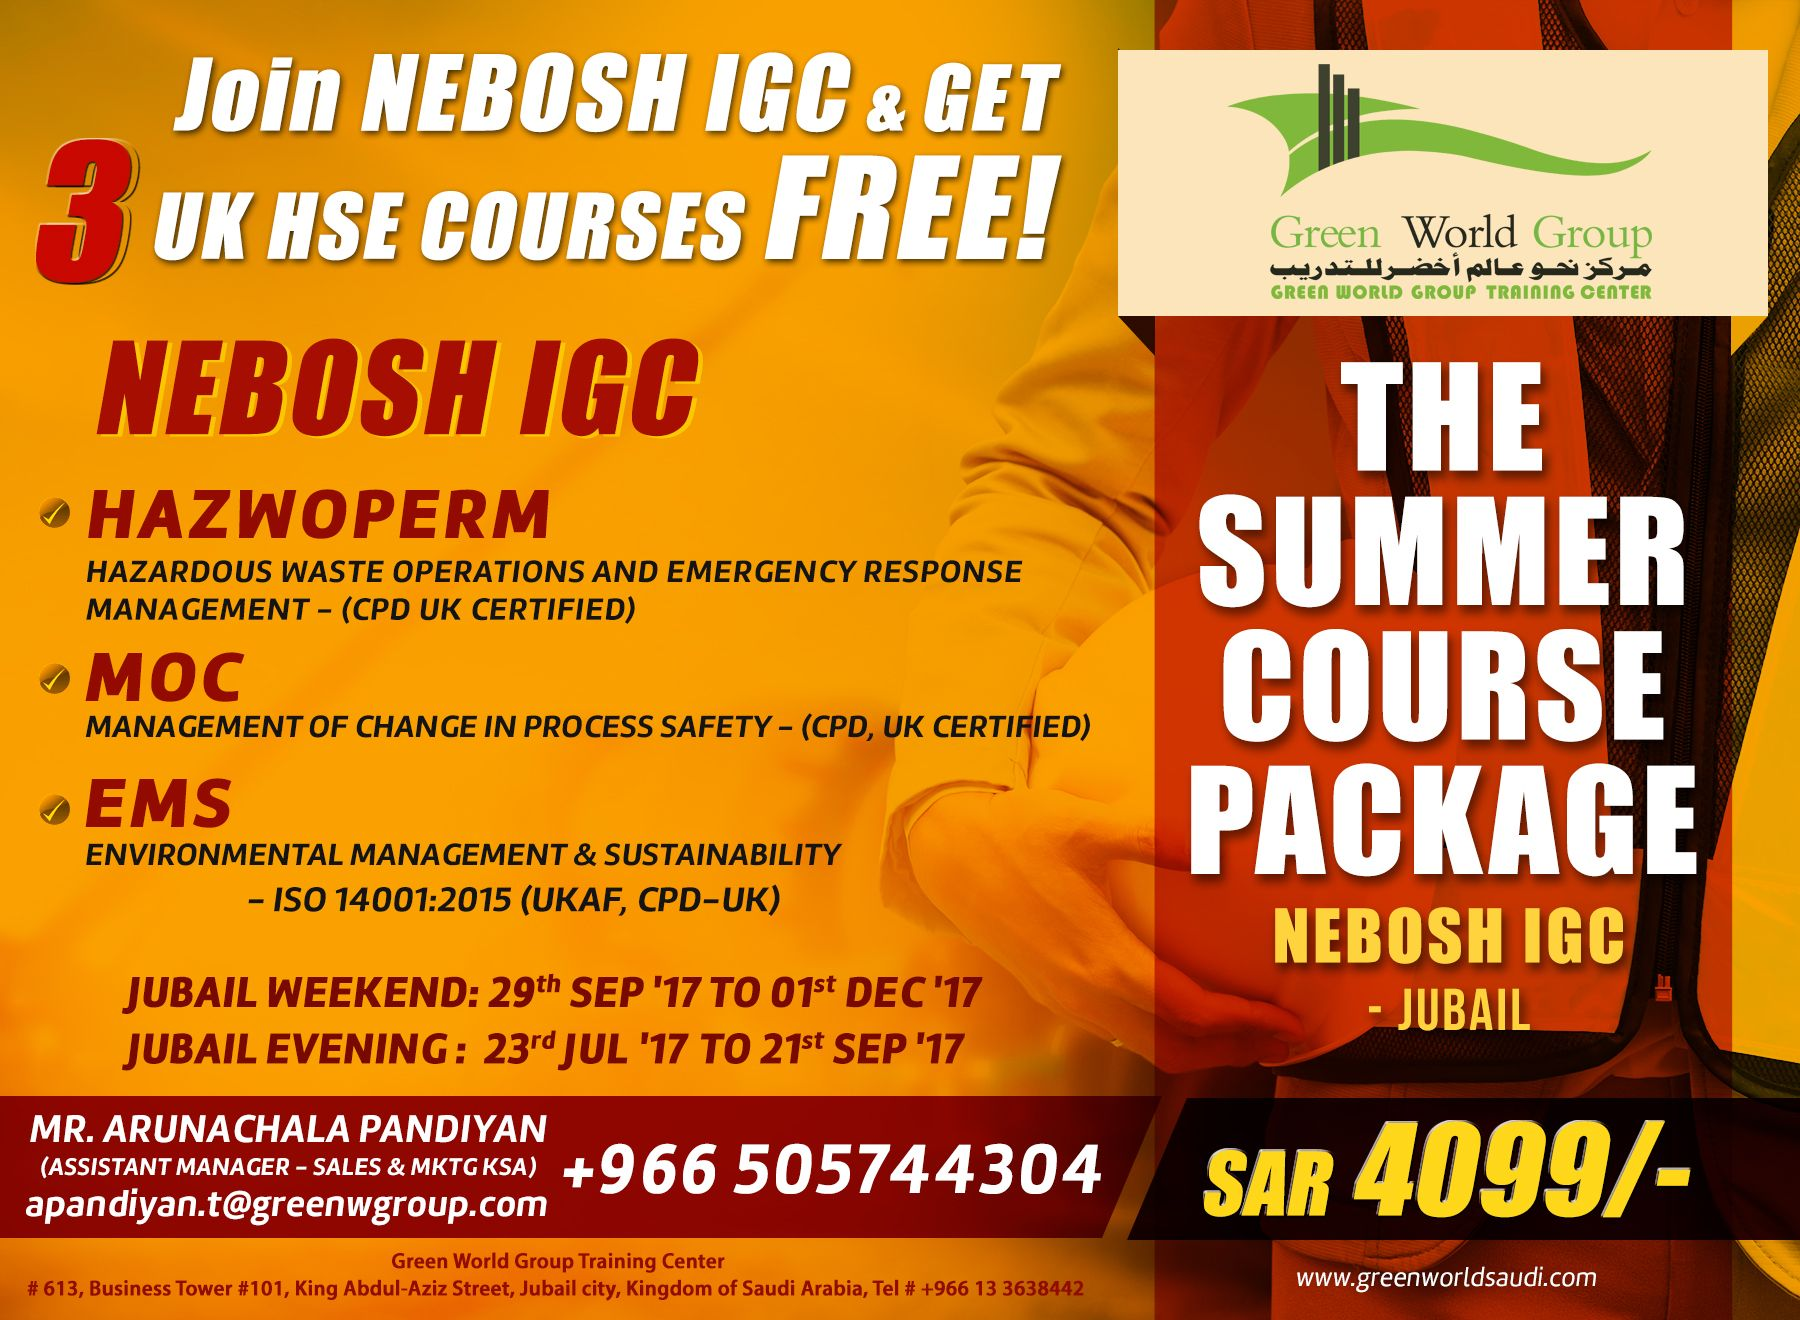 Join Nebosh Igc Course In Jubail Get 3 Free Uk Hse Courses In